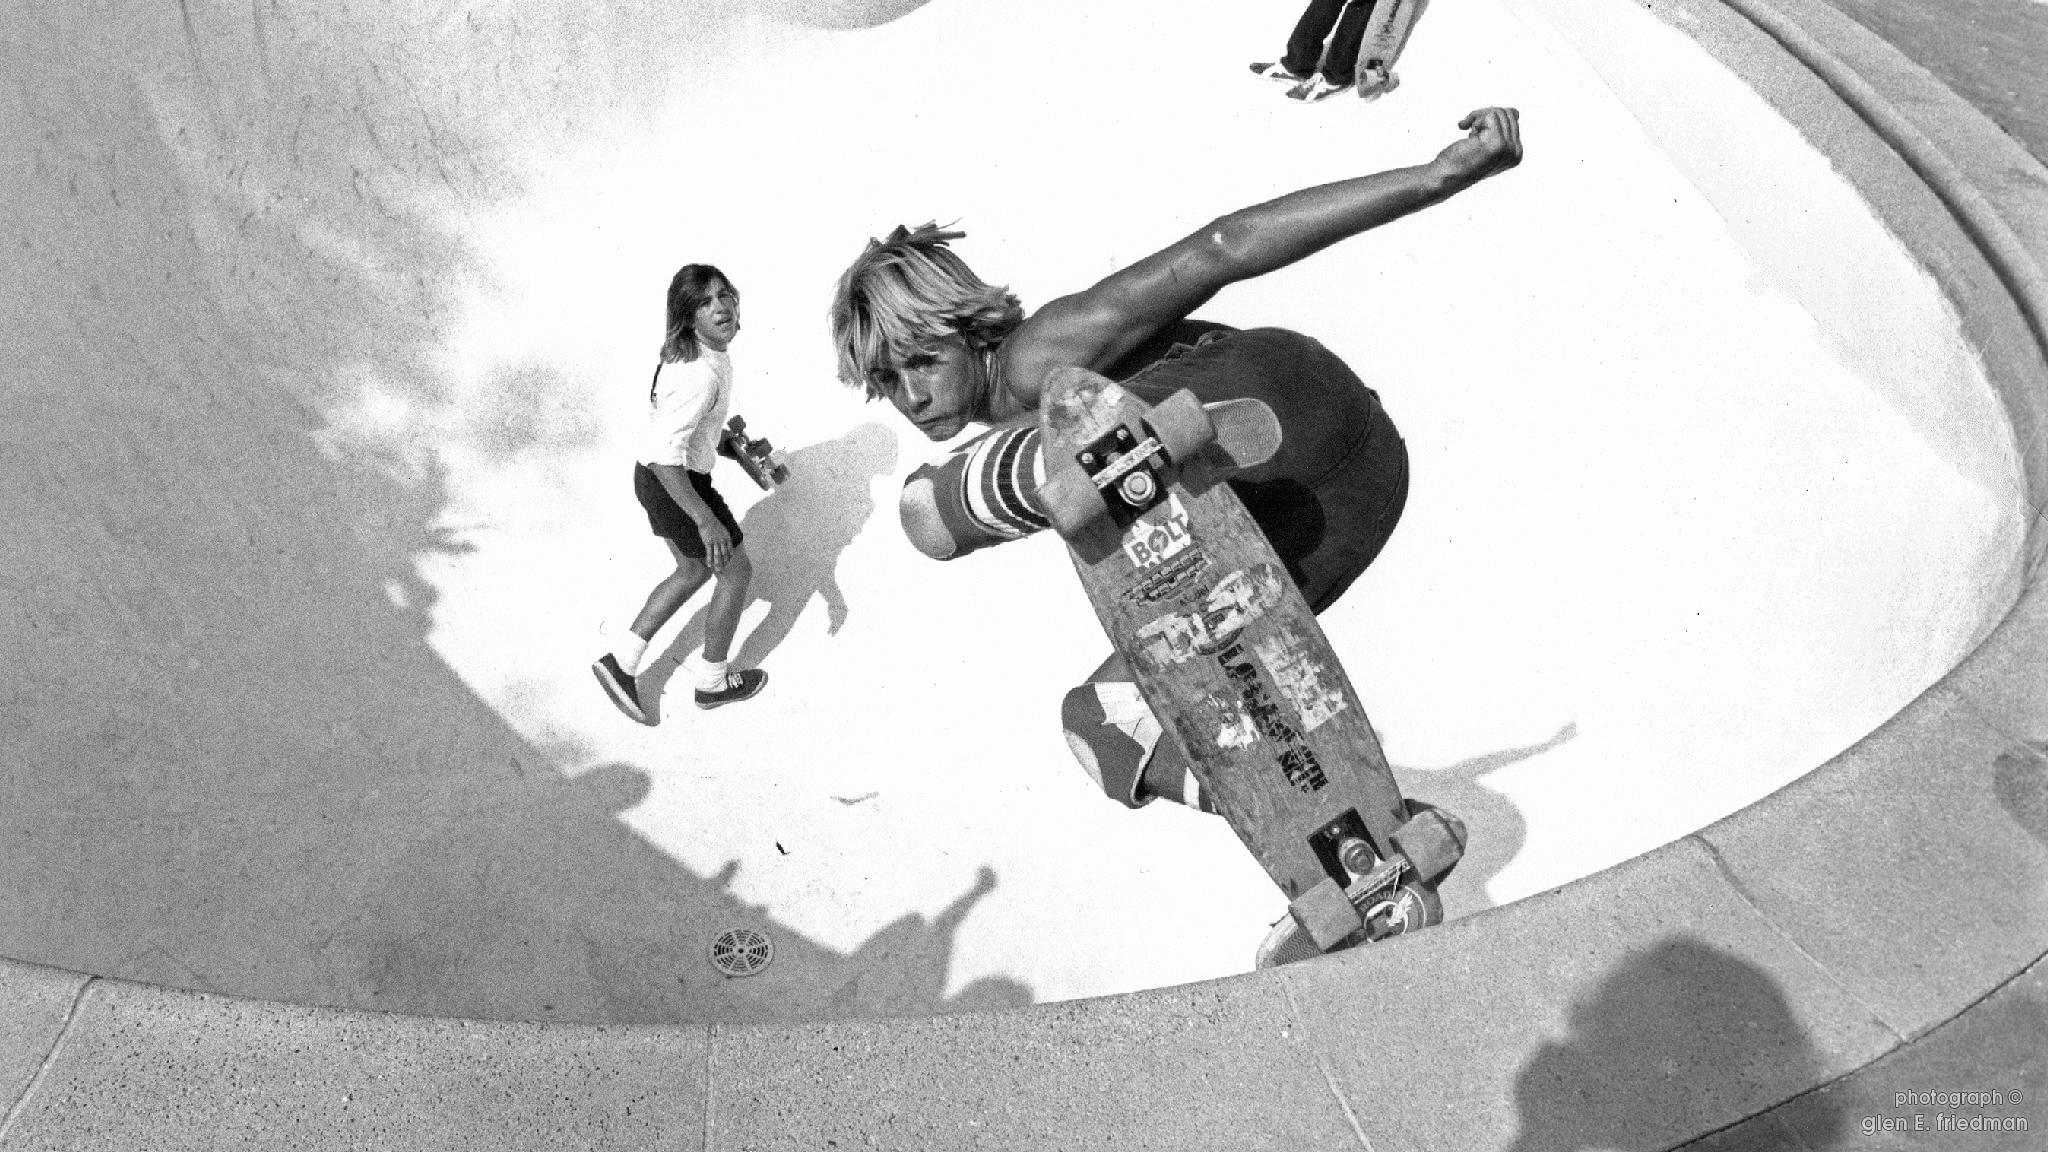 Jay Adams skates a backyard pool in West Los Angeles in 1976. Fellow Zephyr team rider Paul Constantineau looks on from the bottom of the pool. Adams died on Thursday at 53.